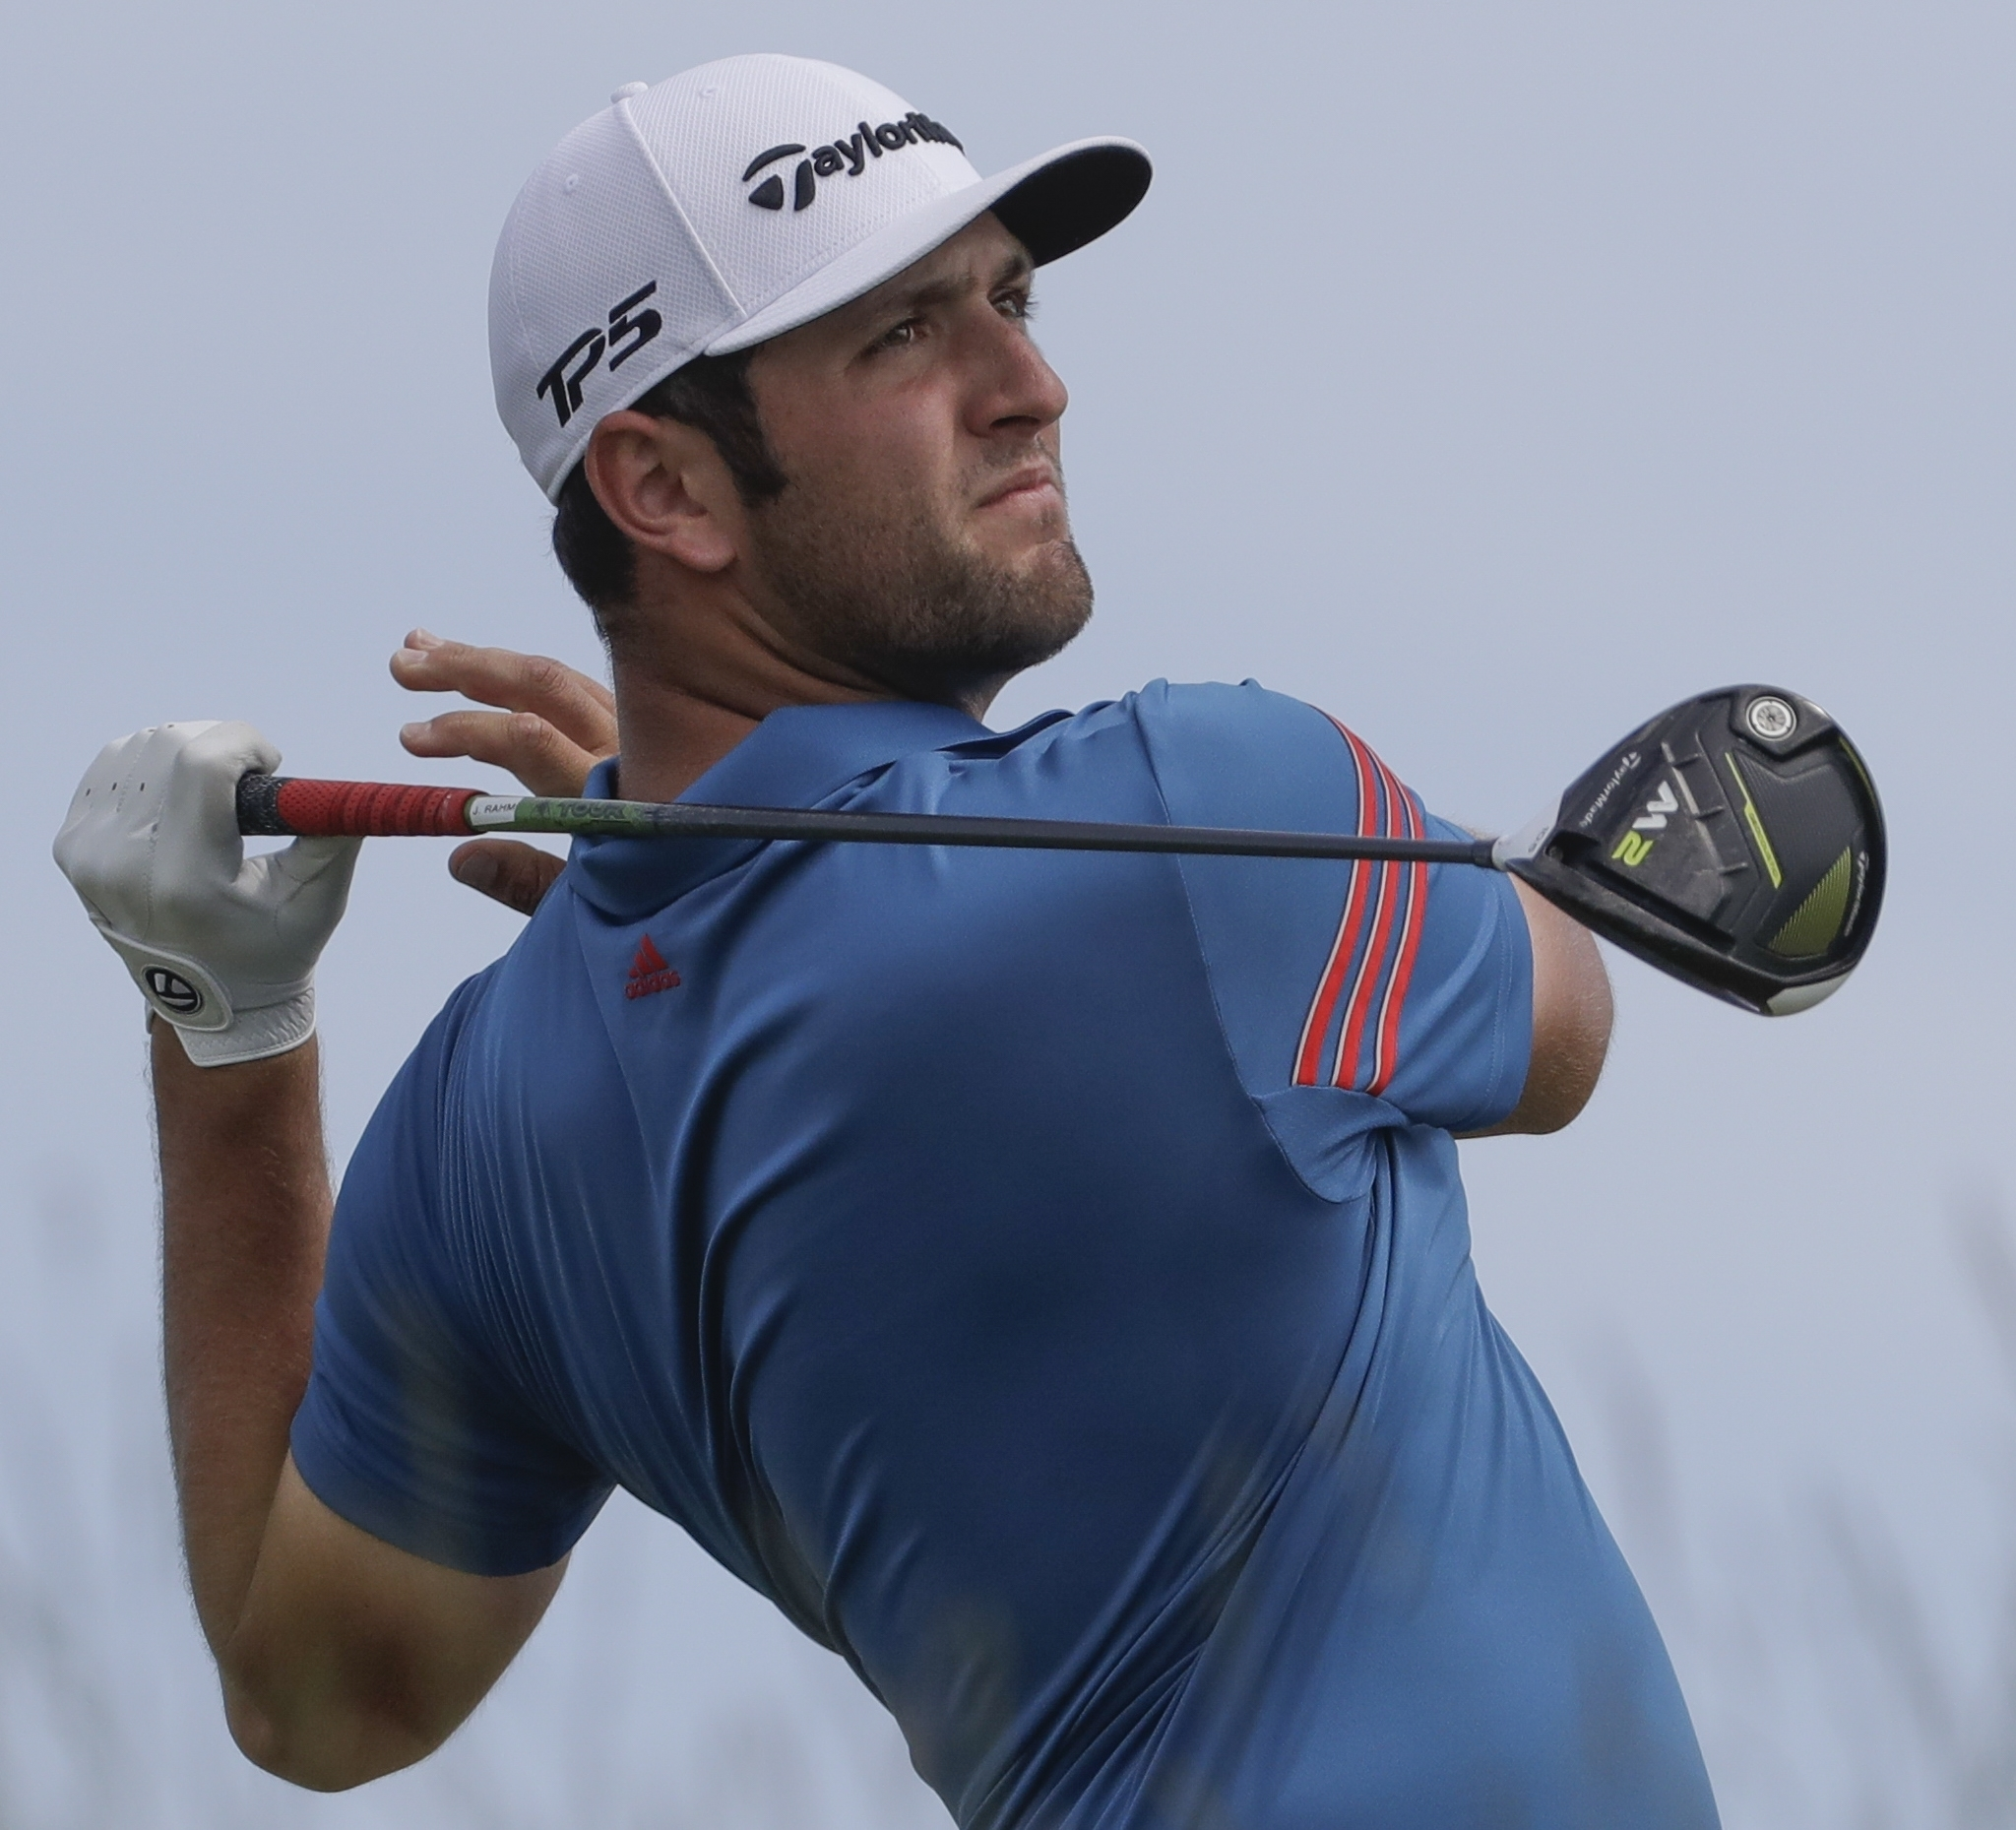 Jon Rahm, of Spain, hits a drive on the seventh hole during the second round of the U.S. Open golf tournament Friday, June 16, 2017, at Erin Hills in Erin, Wis. (AP Photo/Chris Carlson)